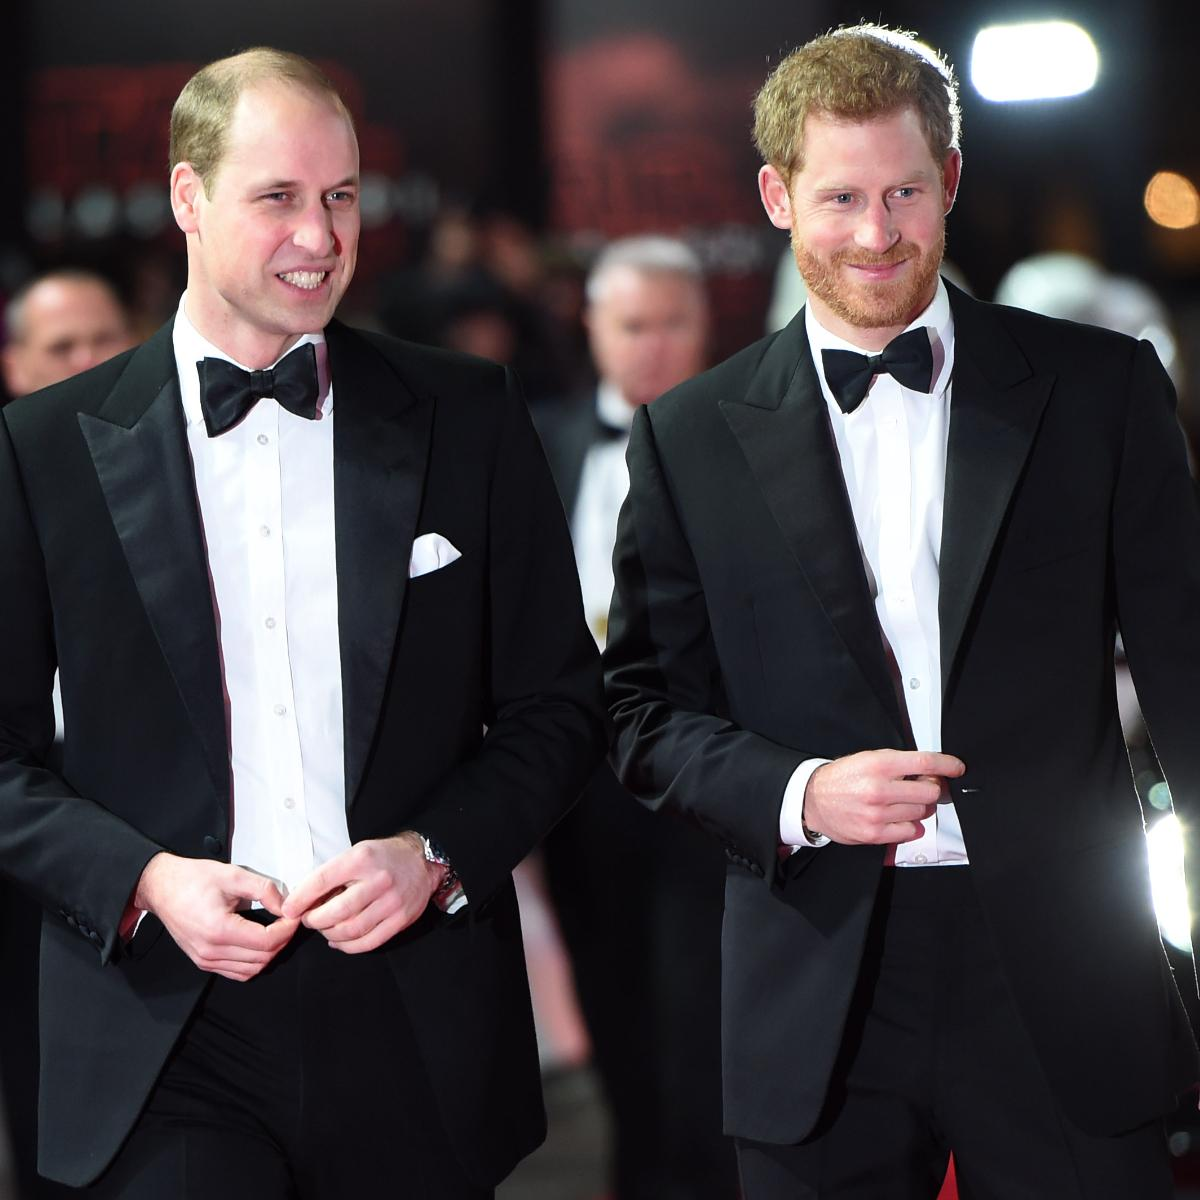 When Prince William and Prince Harry were spotted together at the European premier of Star Wars: The Last Jedi